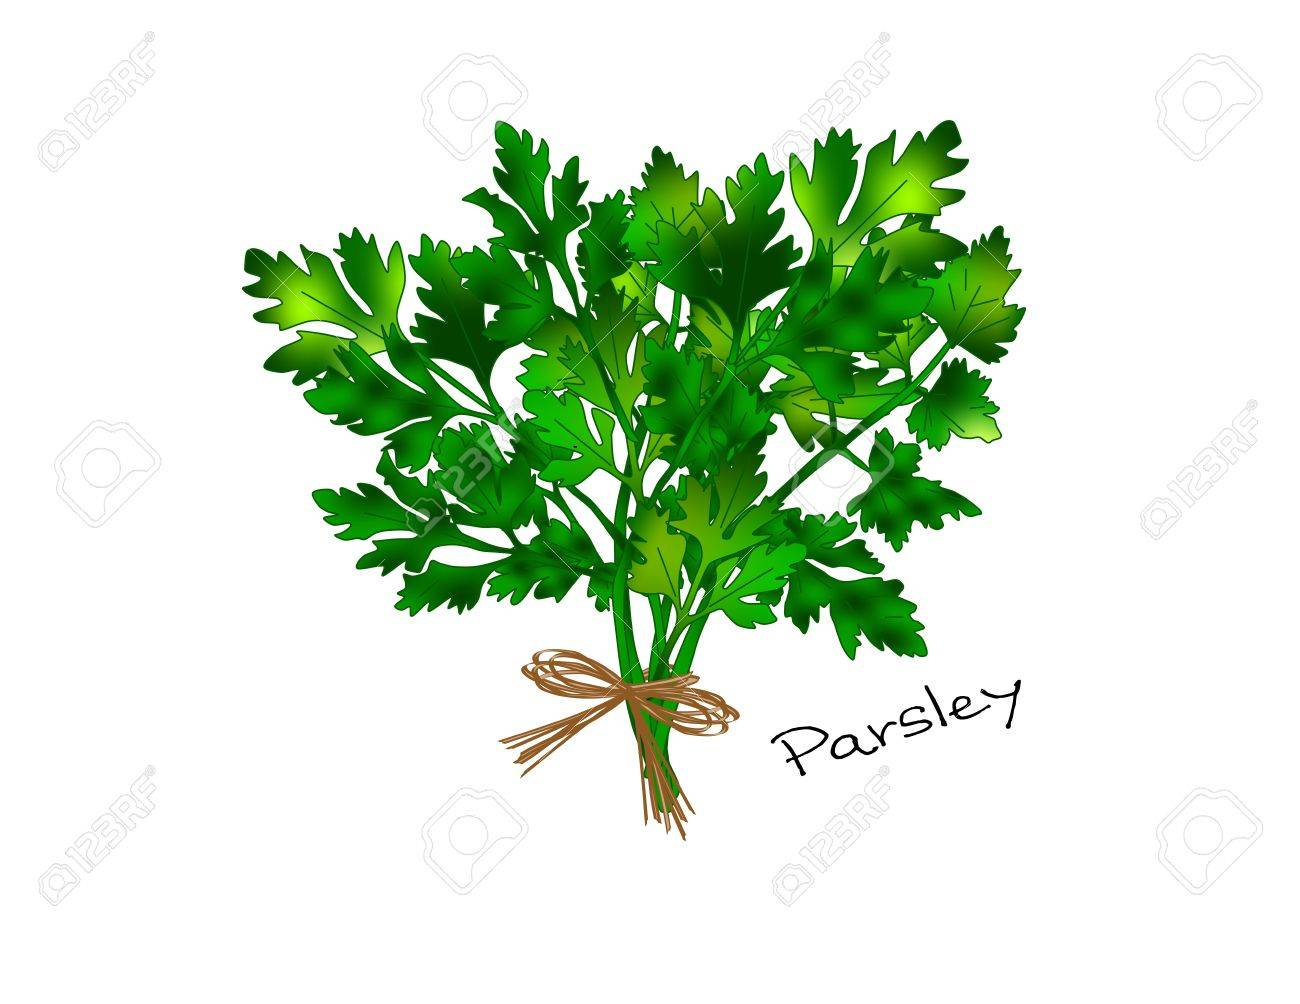 Parsley Illustration An illustration of a bunch of